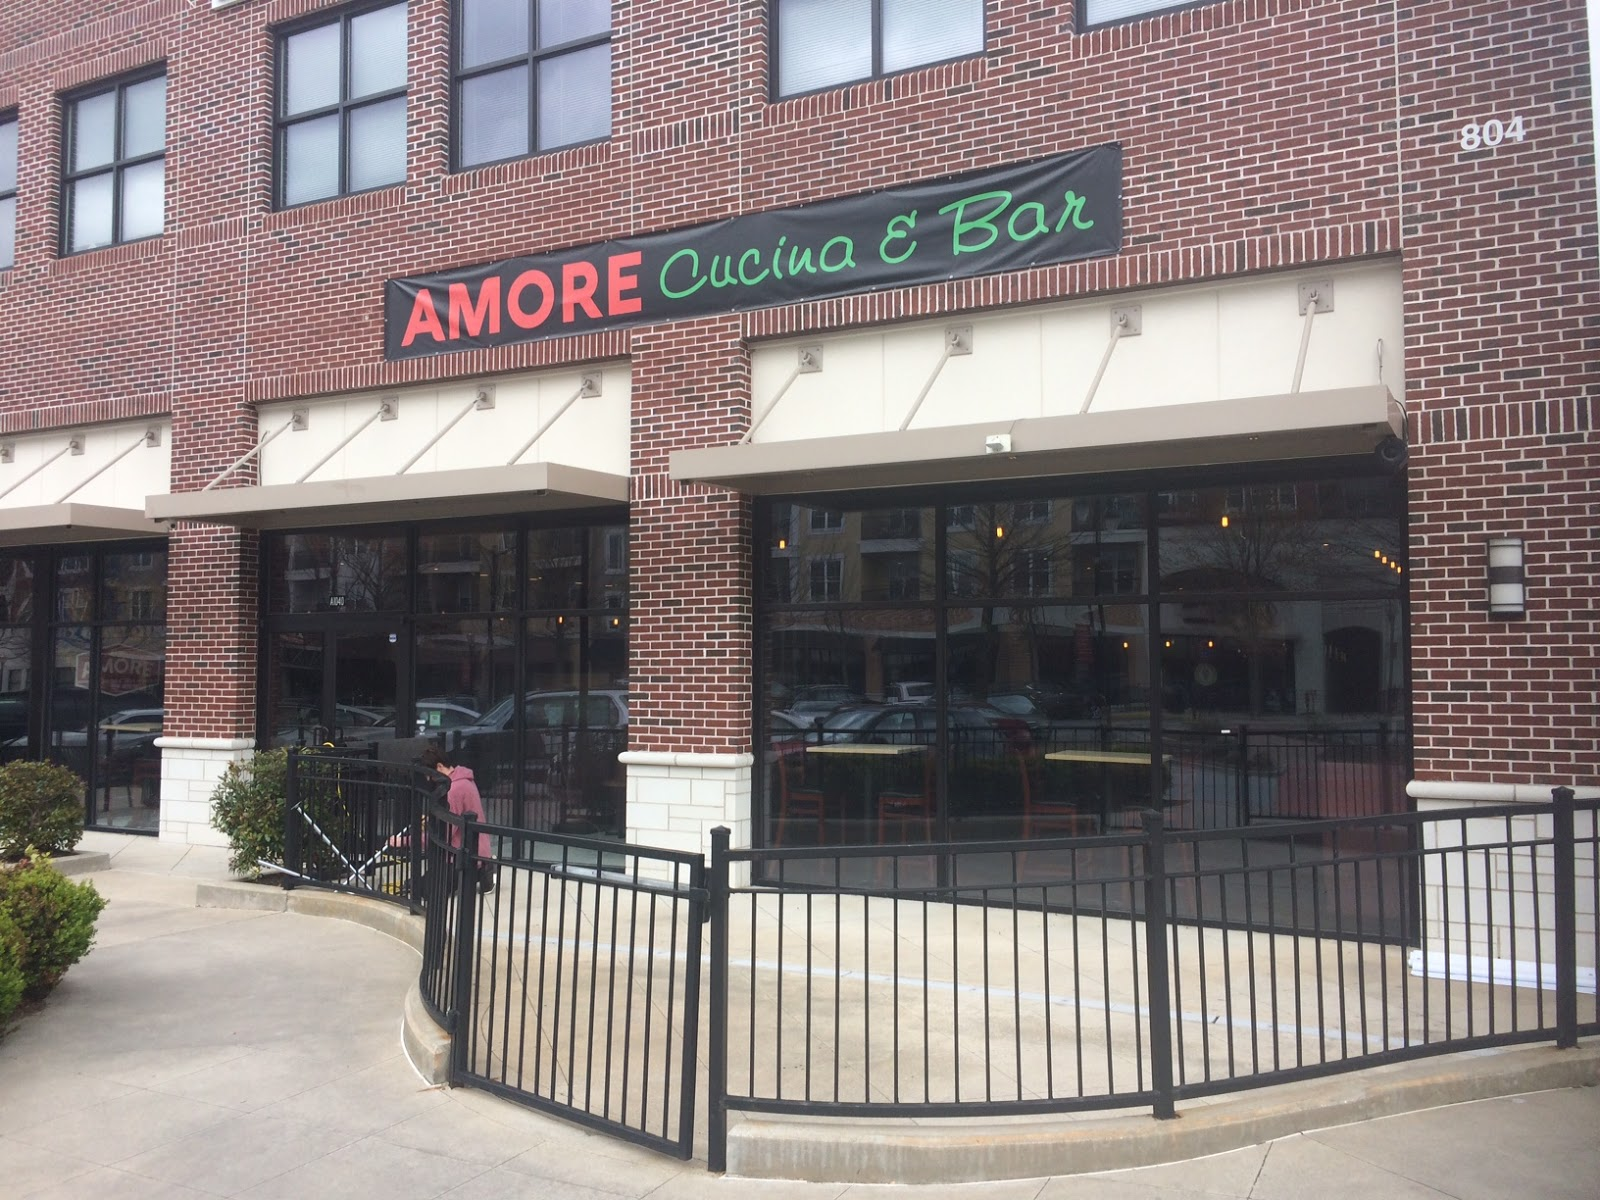 Amore Cucina Restaurant Wayne Nj Tomorrow S News Today Atlanta March 2018